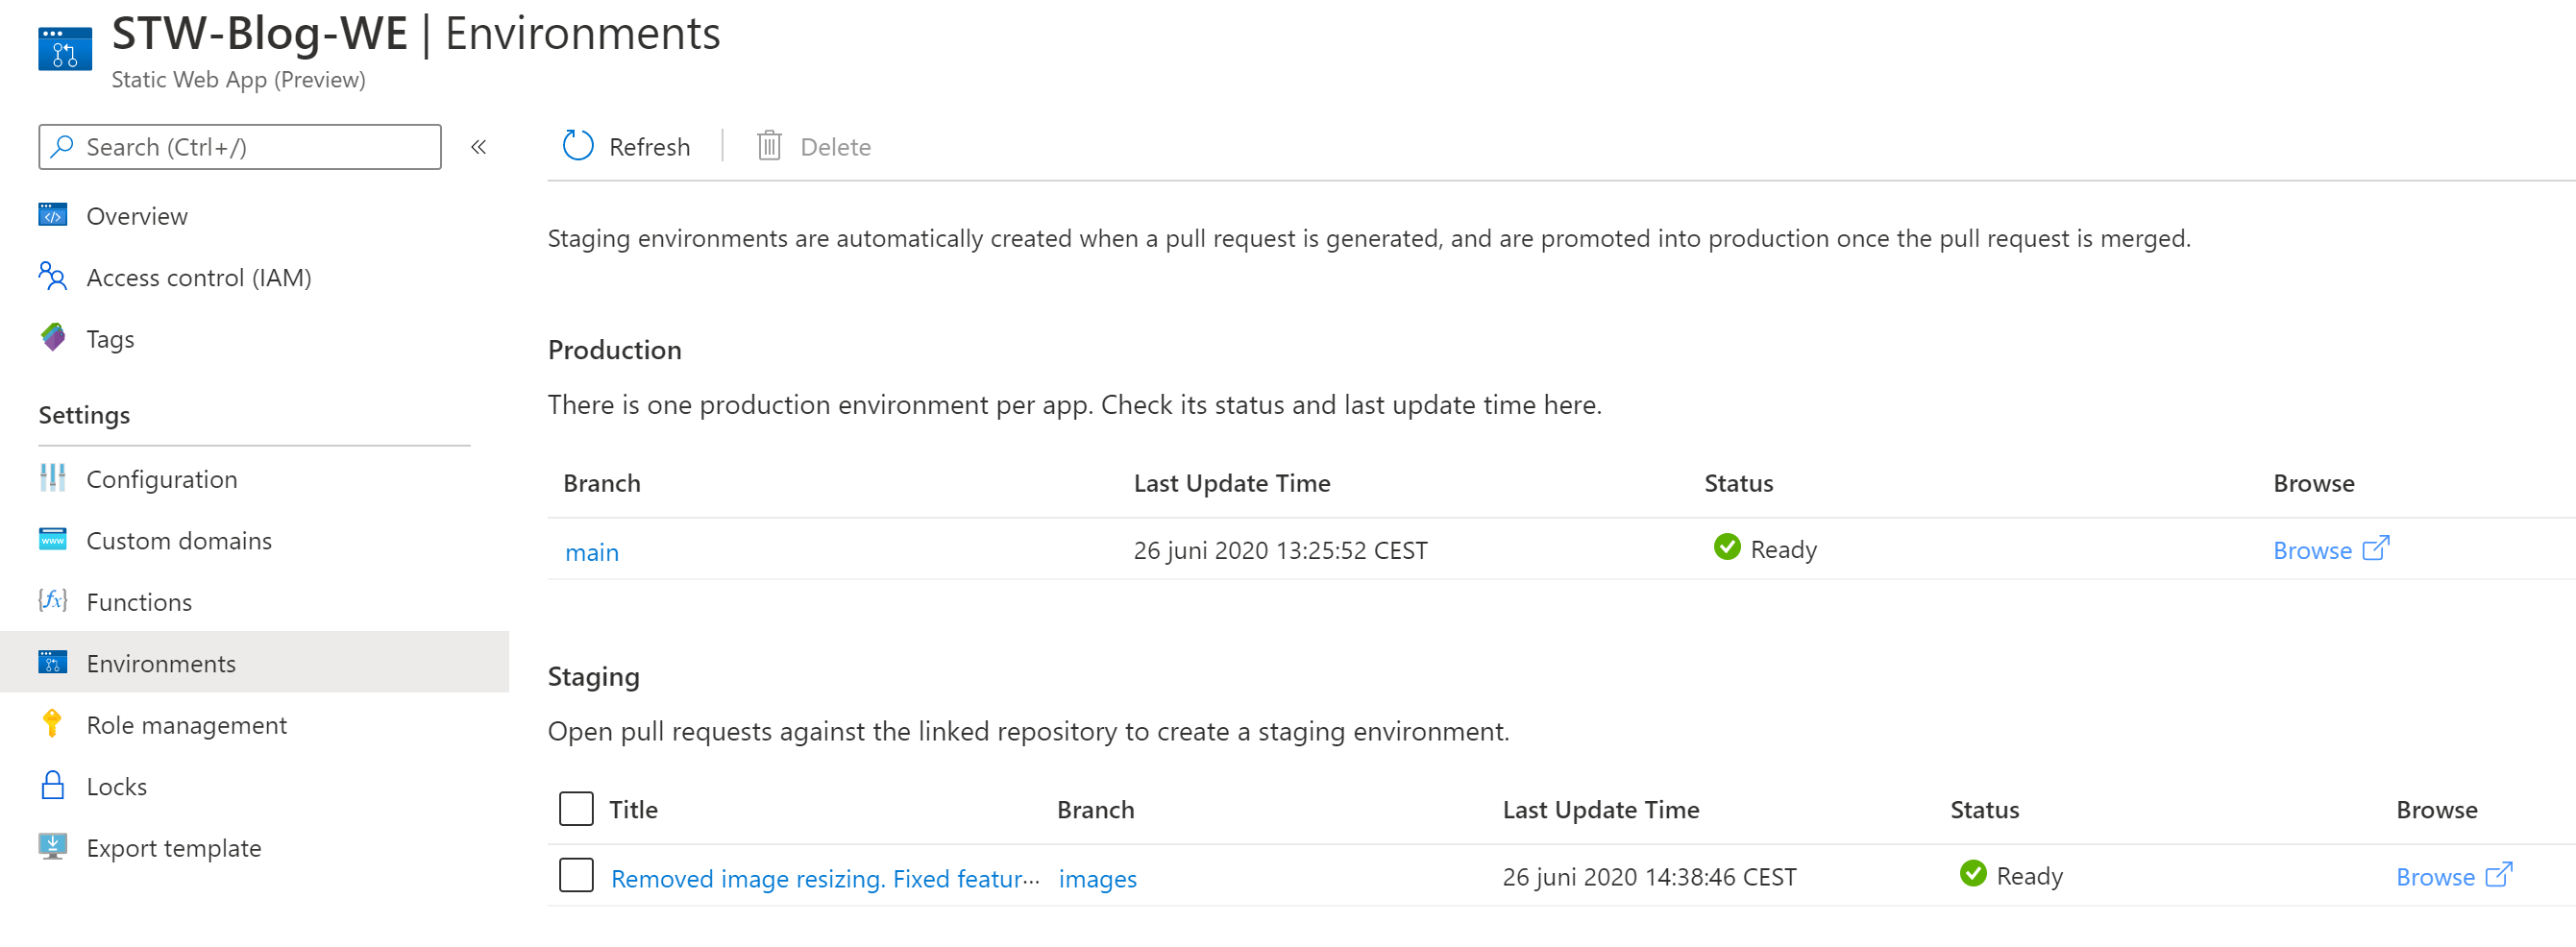 Environment page in the Azure Portal